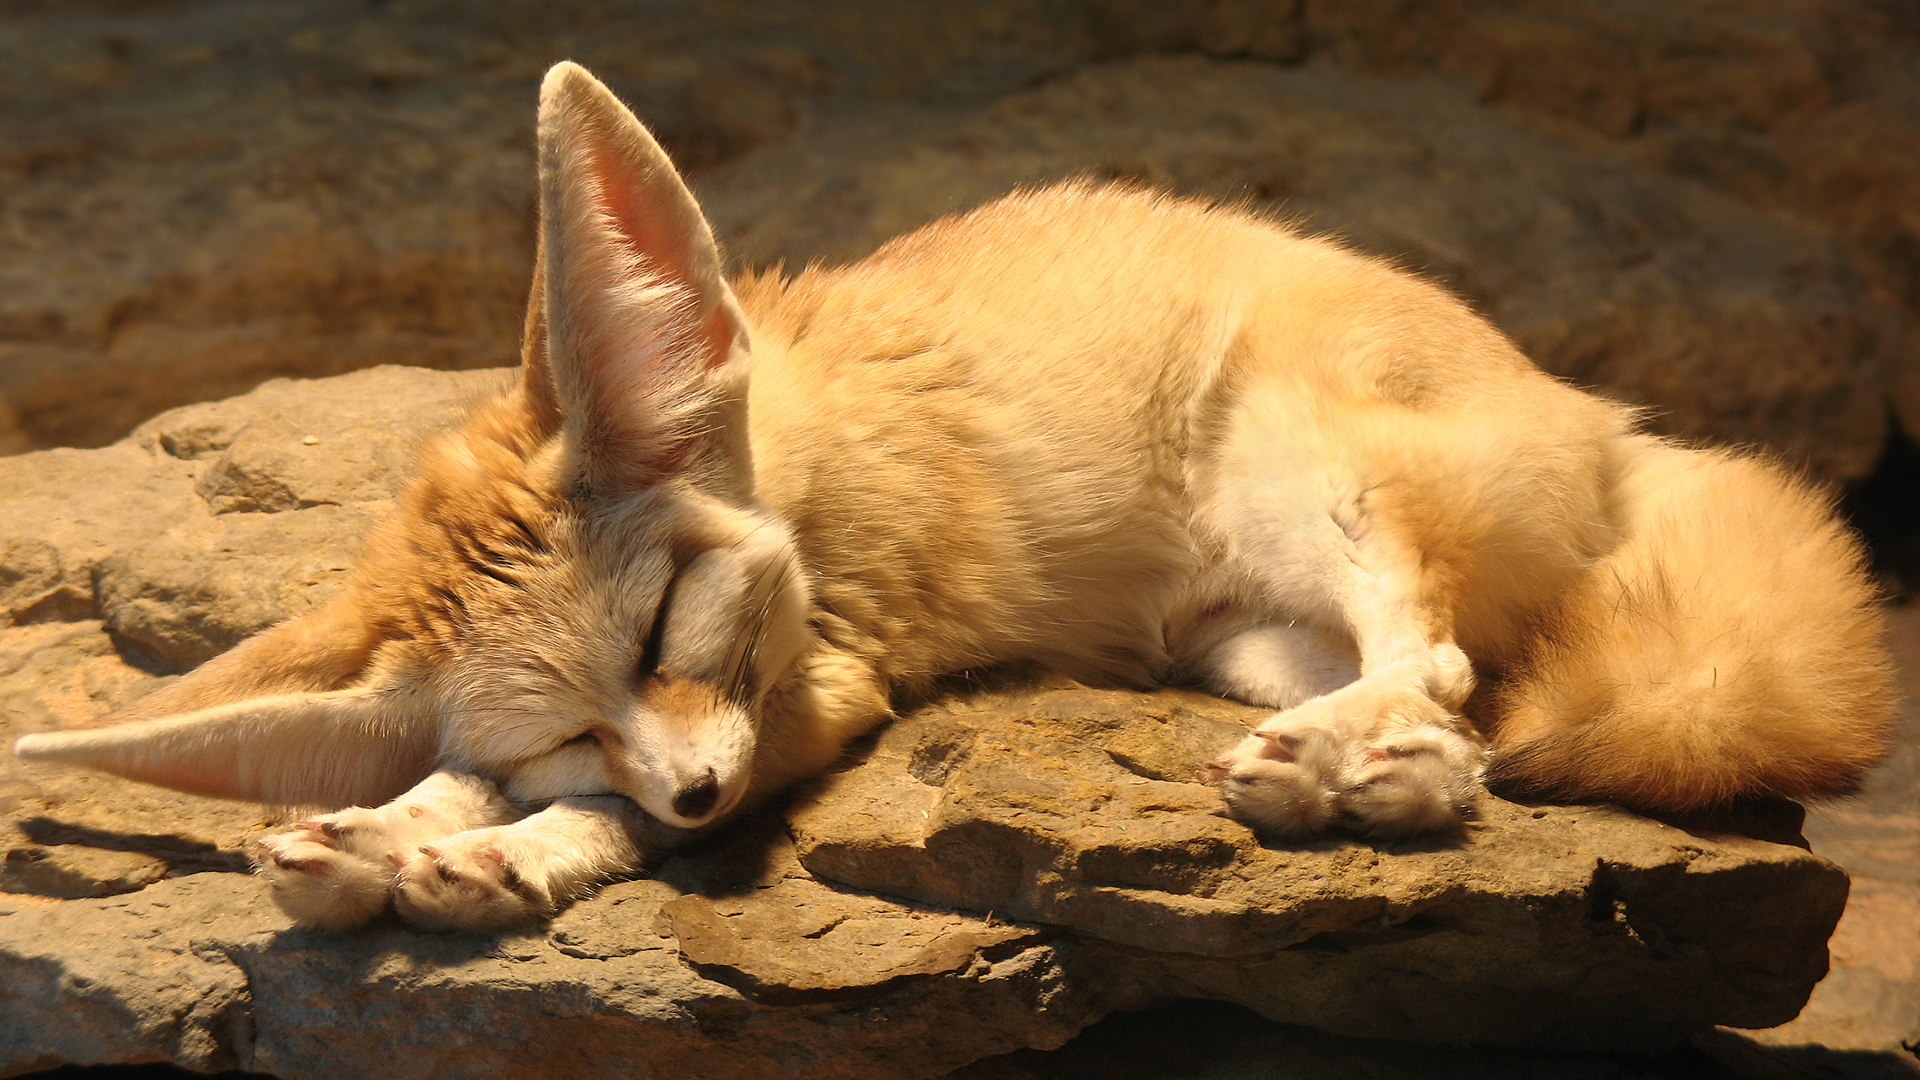 108 best Fennec fox images on Pinterest | Fennec fox, Foxes and ...